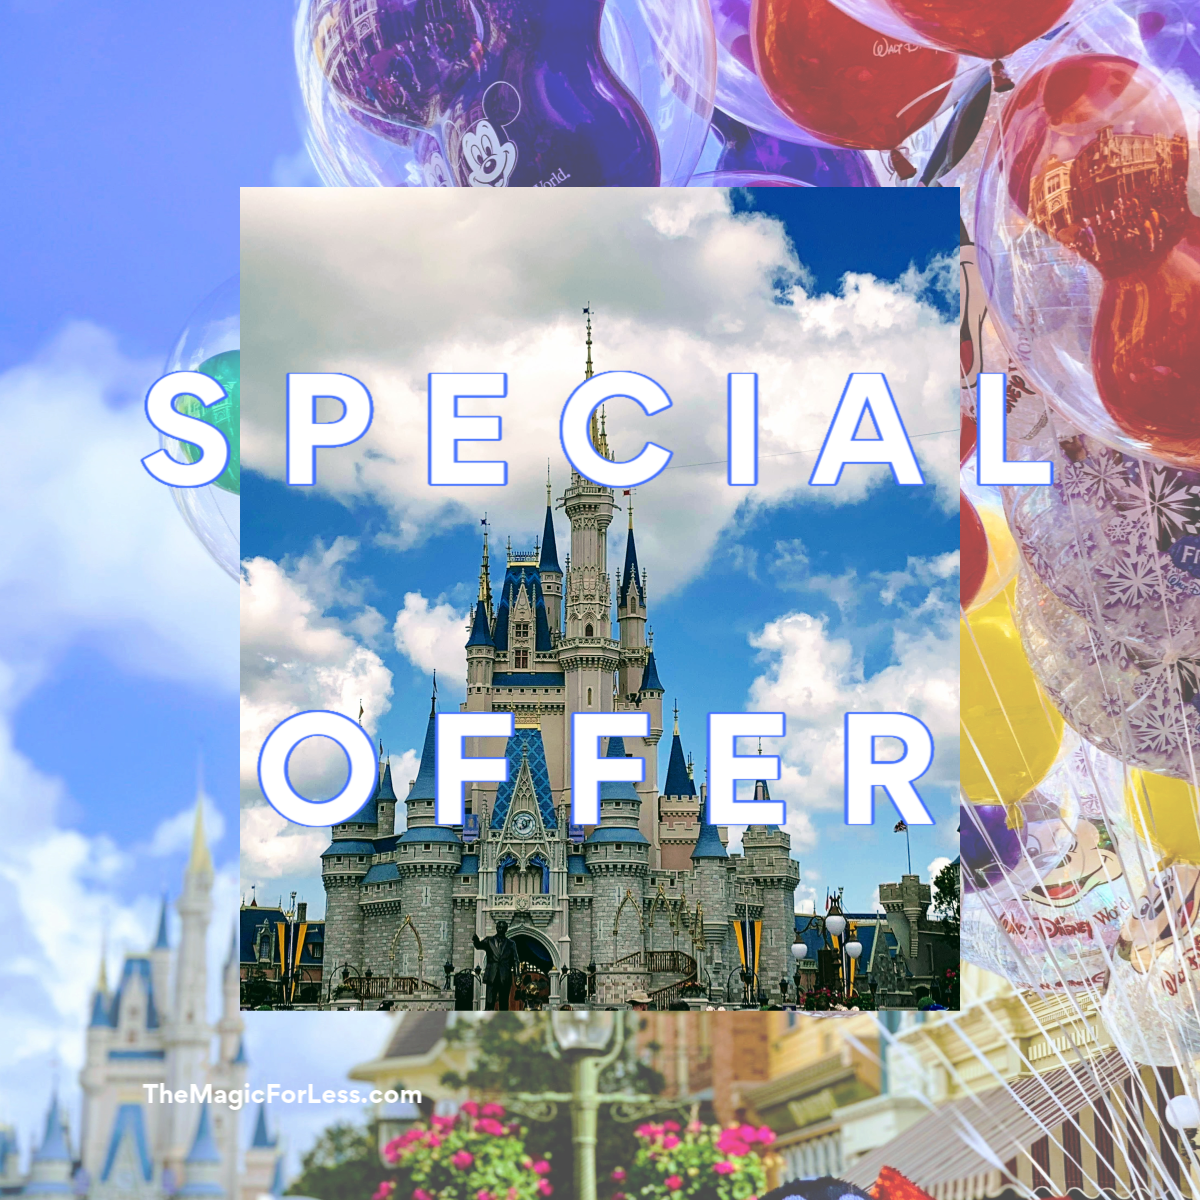 Special Offers And Discounts For Walt Disney World Vacations The Magic For Less Travel In 2020 Disney World Discounts Walt Disney World Vacations Disney World Vacation